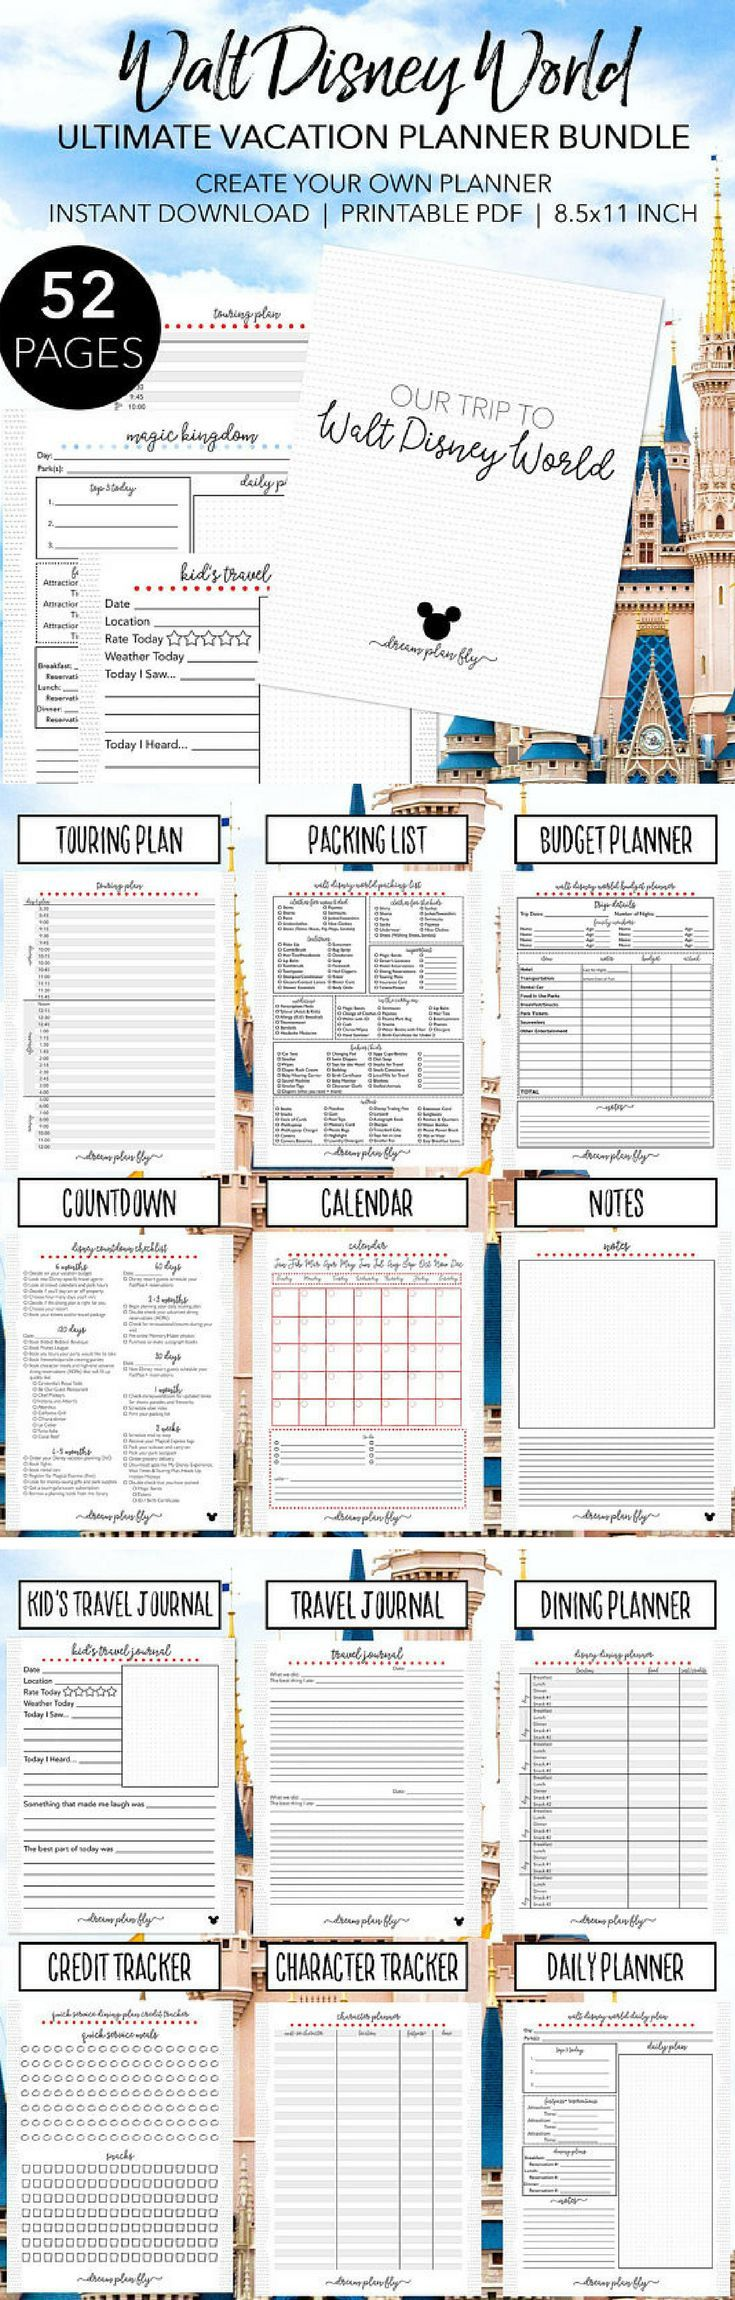 Ultimate Walt Disney World Planner | 52 Pages of planning | Create Your Own Disney World Printable Planner | INSTANT DOWNLOAD | Letter Size #ad #disneyland #disneyworld #disneybound #disneystyle #disneyvacation #vacation #planner #planning #planneraddict #plannerlove #plannercommunity #plannergirl #printable #print #download #downloadandprint